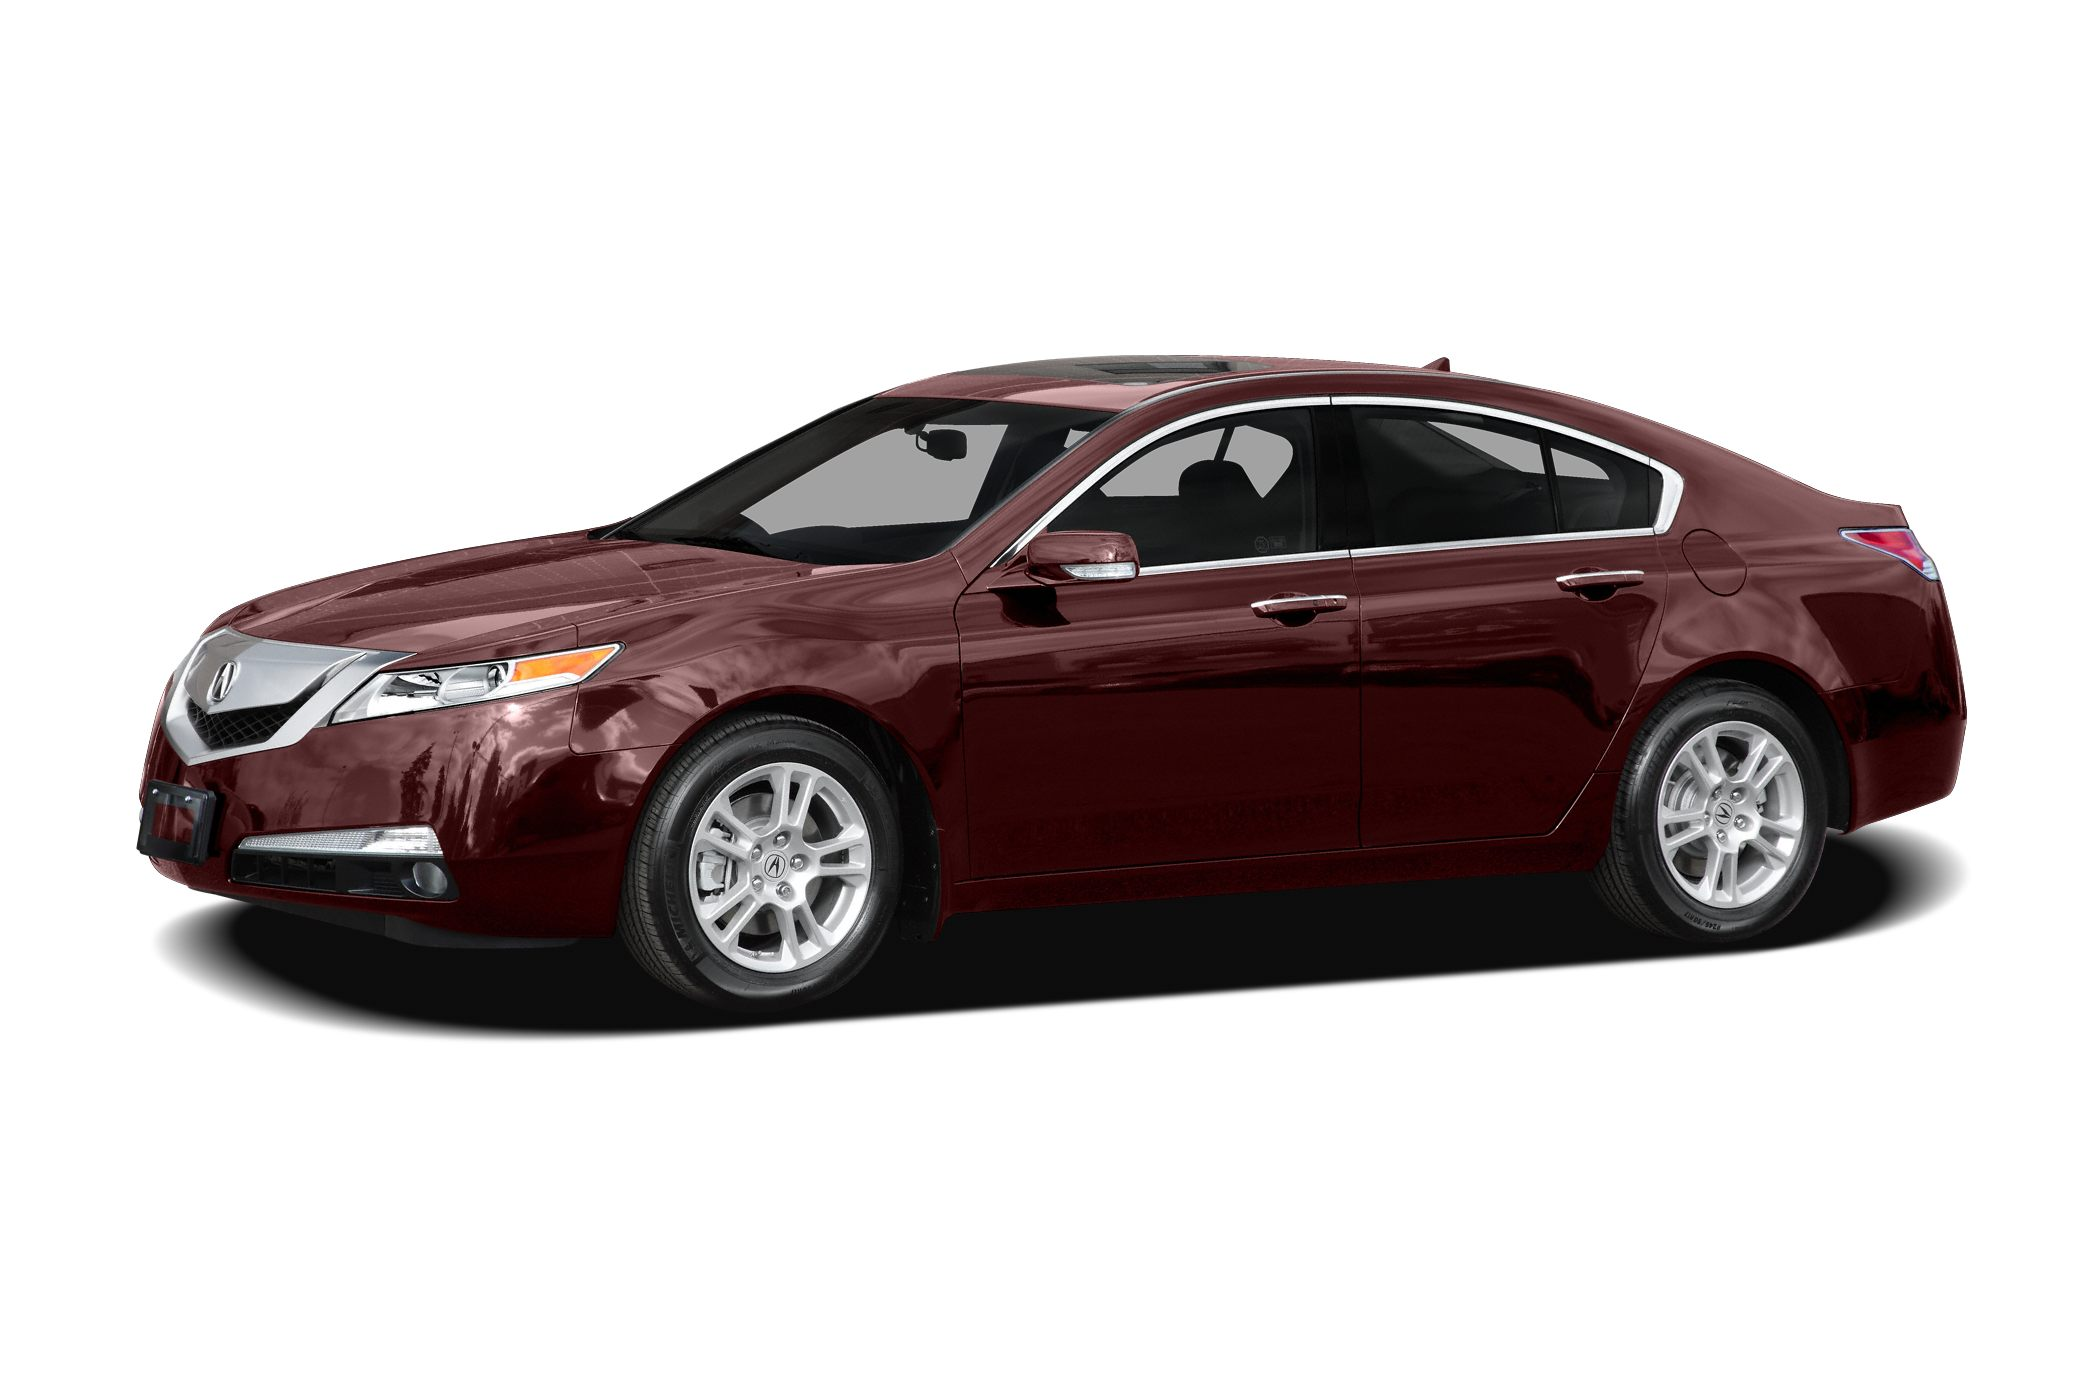 2009 Acura TL 35 Technology Boosts the oomph factor User-friendly controls NEW ARRIVAL HERE AT